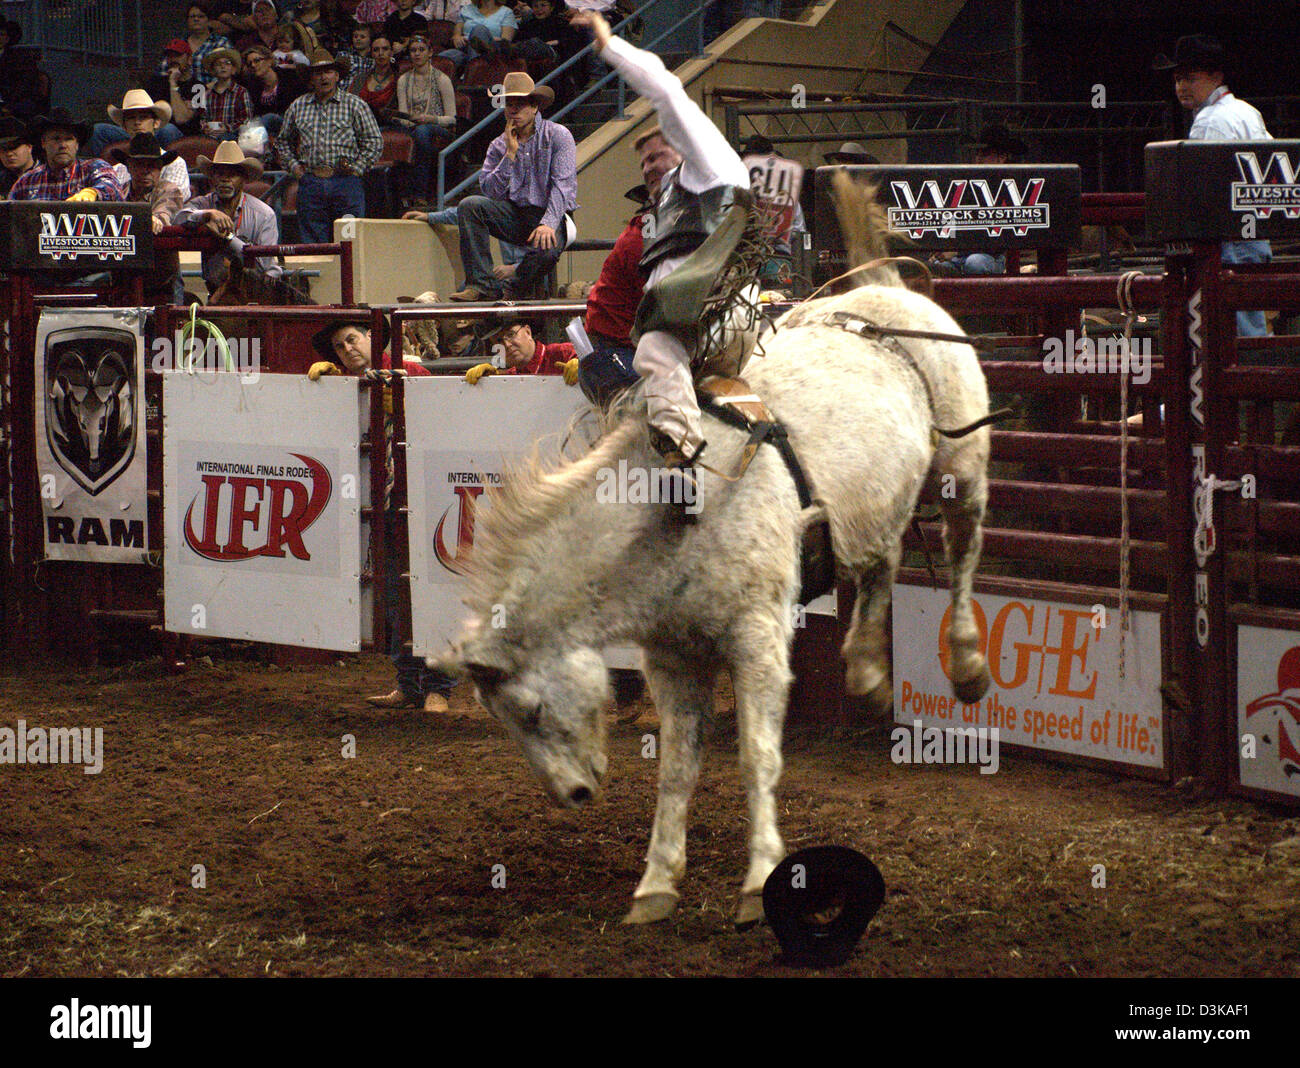 Cowboy Riding Bucking Bronco Horse During The National Finals Rodeo Stock Photo Alamy